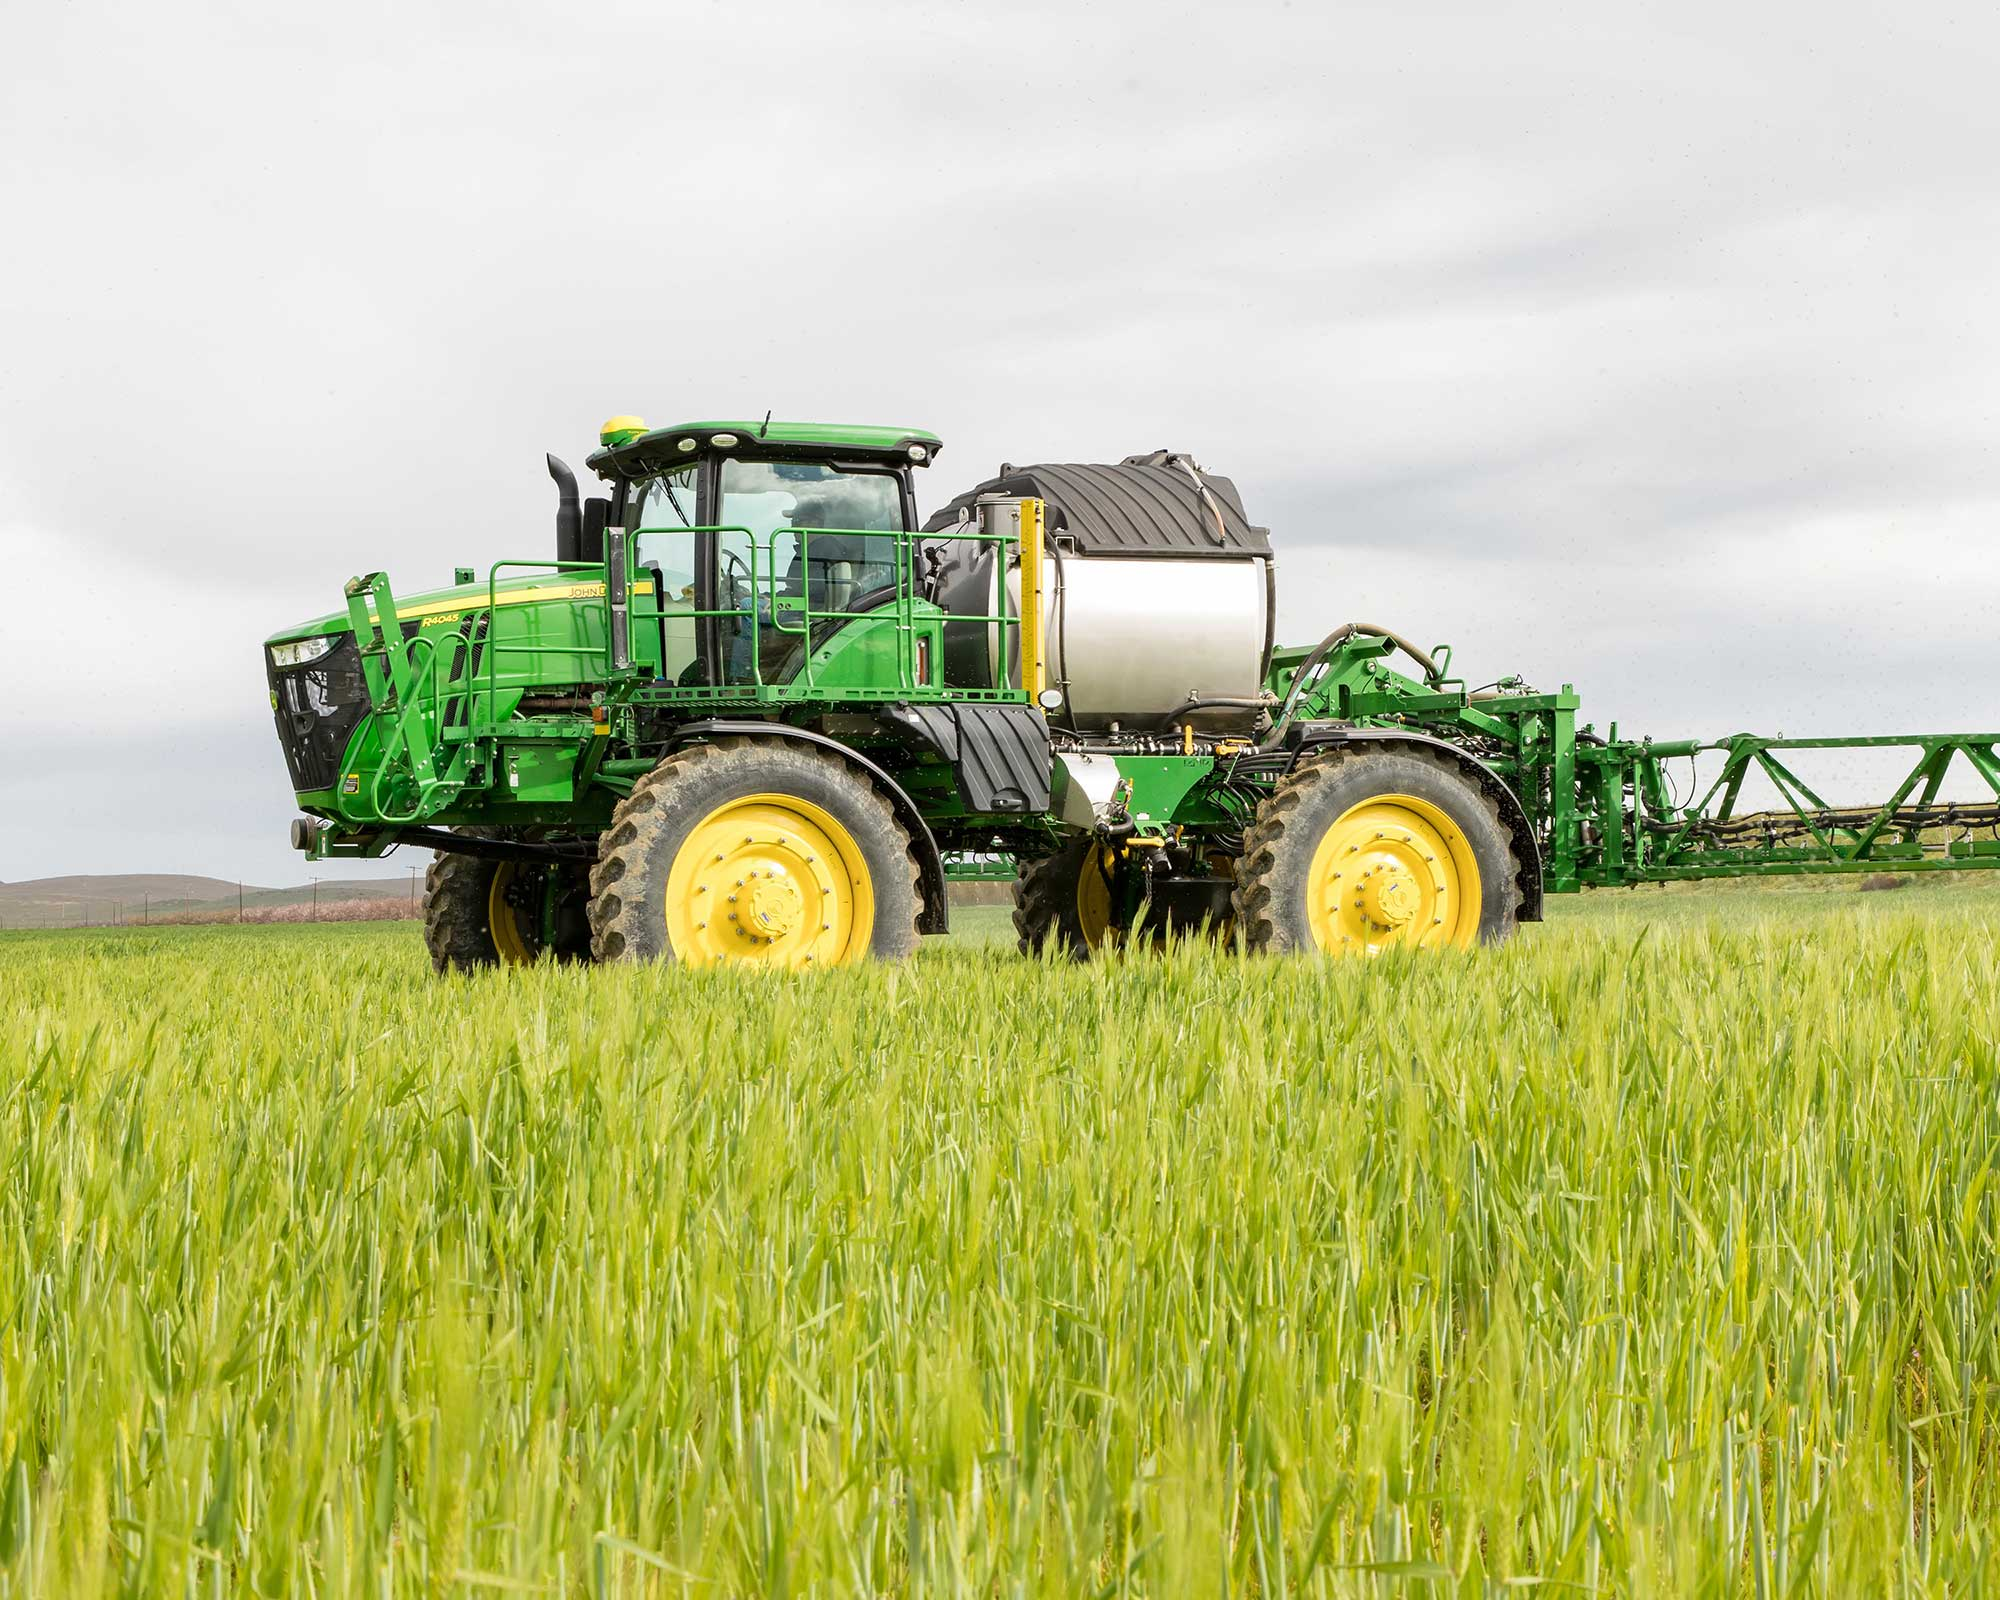 John Deere unveils updates to sprayers for 2020 | AGDAILY